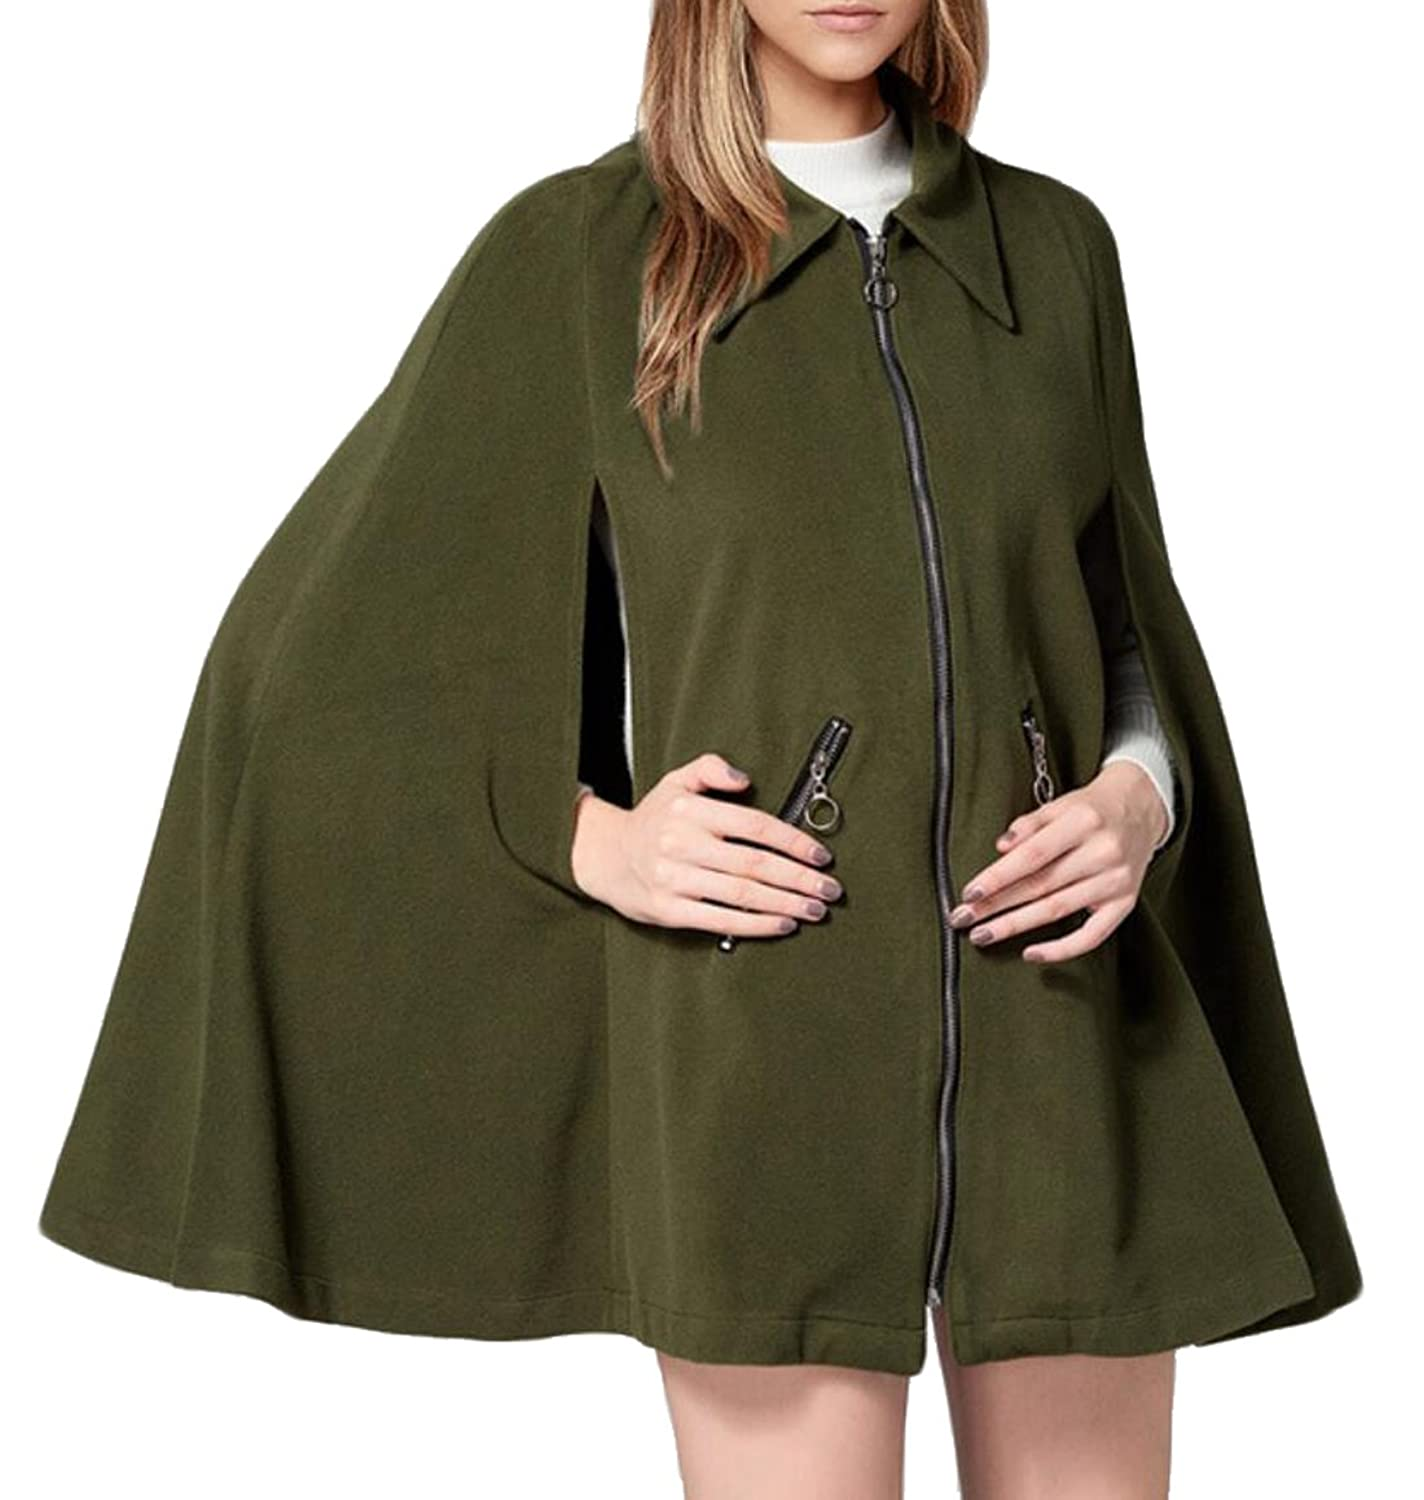 Alion Women's Casual Winter Cloak Cape Woolen Coat Zipper